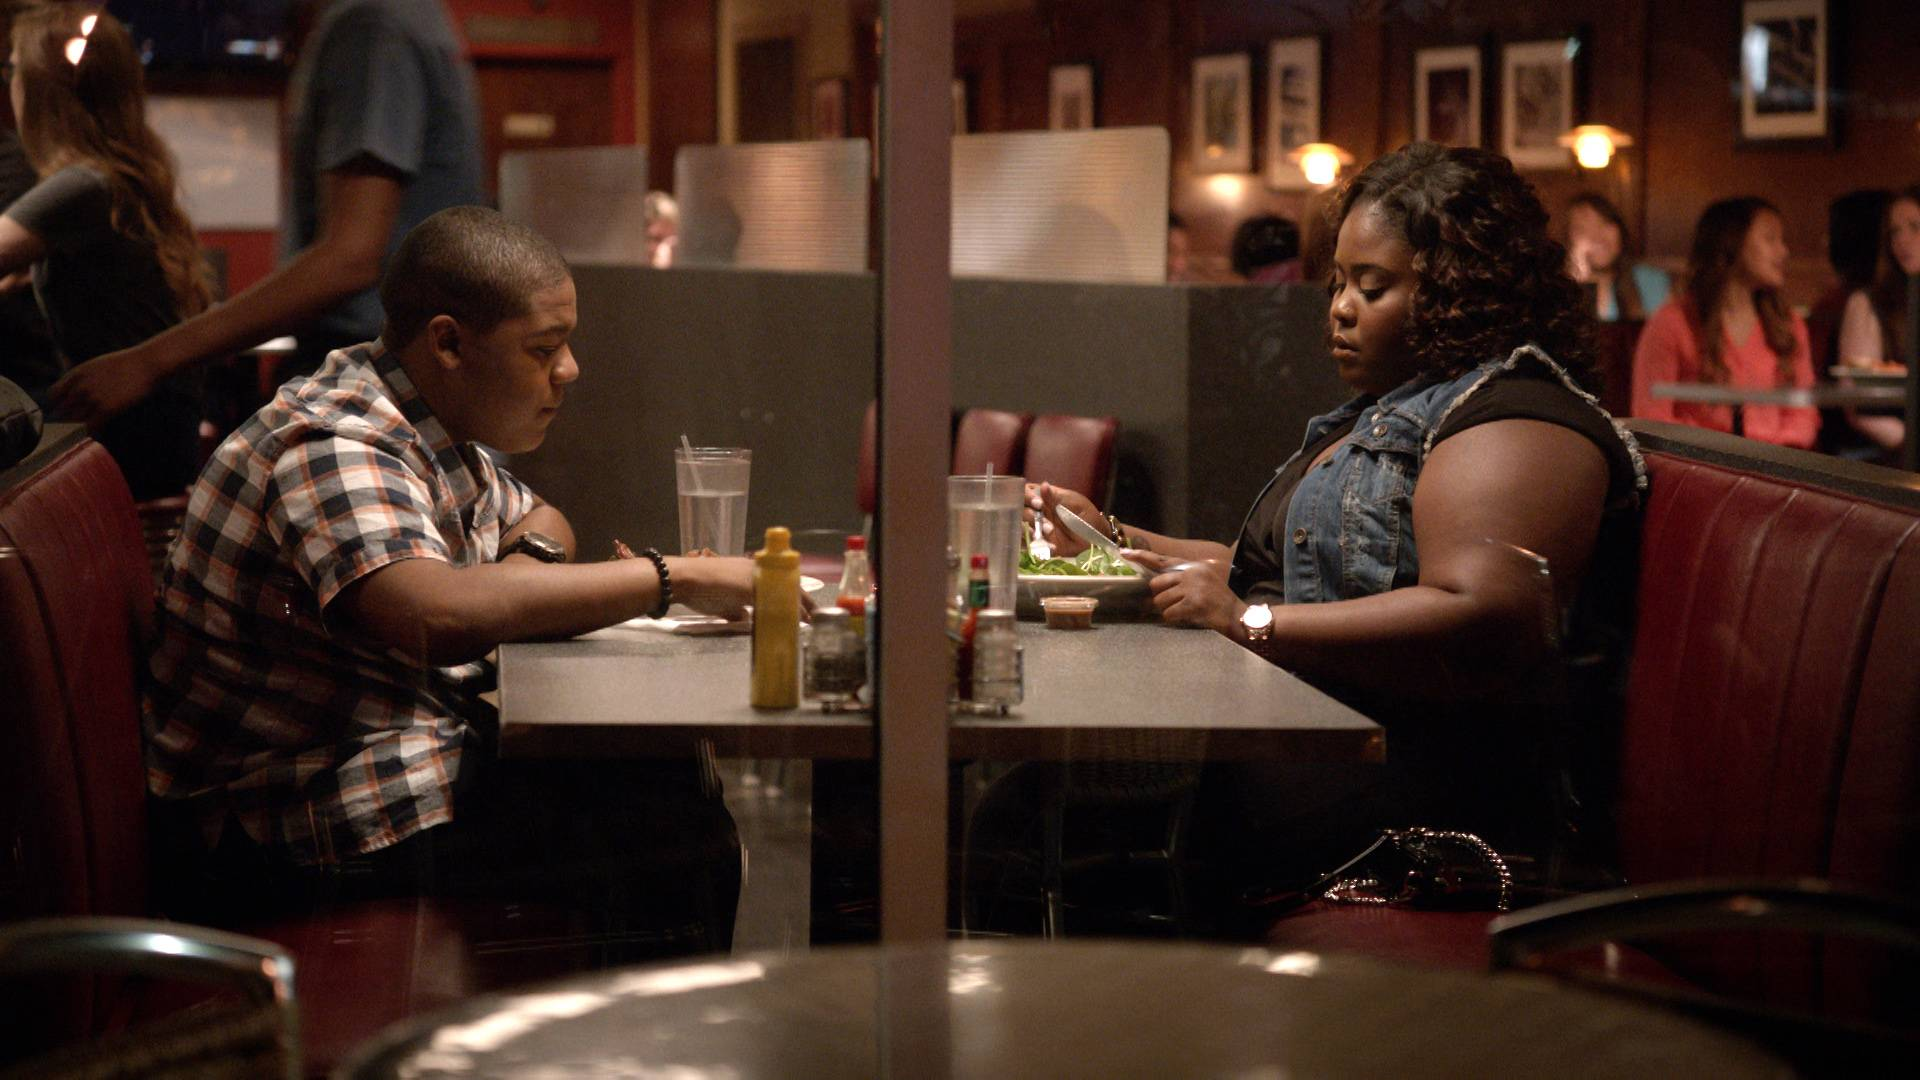 The Baby's Father - Treyvion's dad seems to have missed his family, but is he genuine?(Photo: BET)